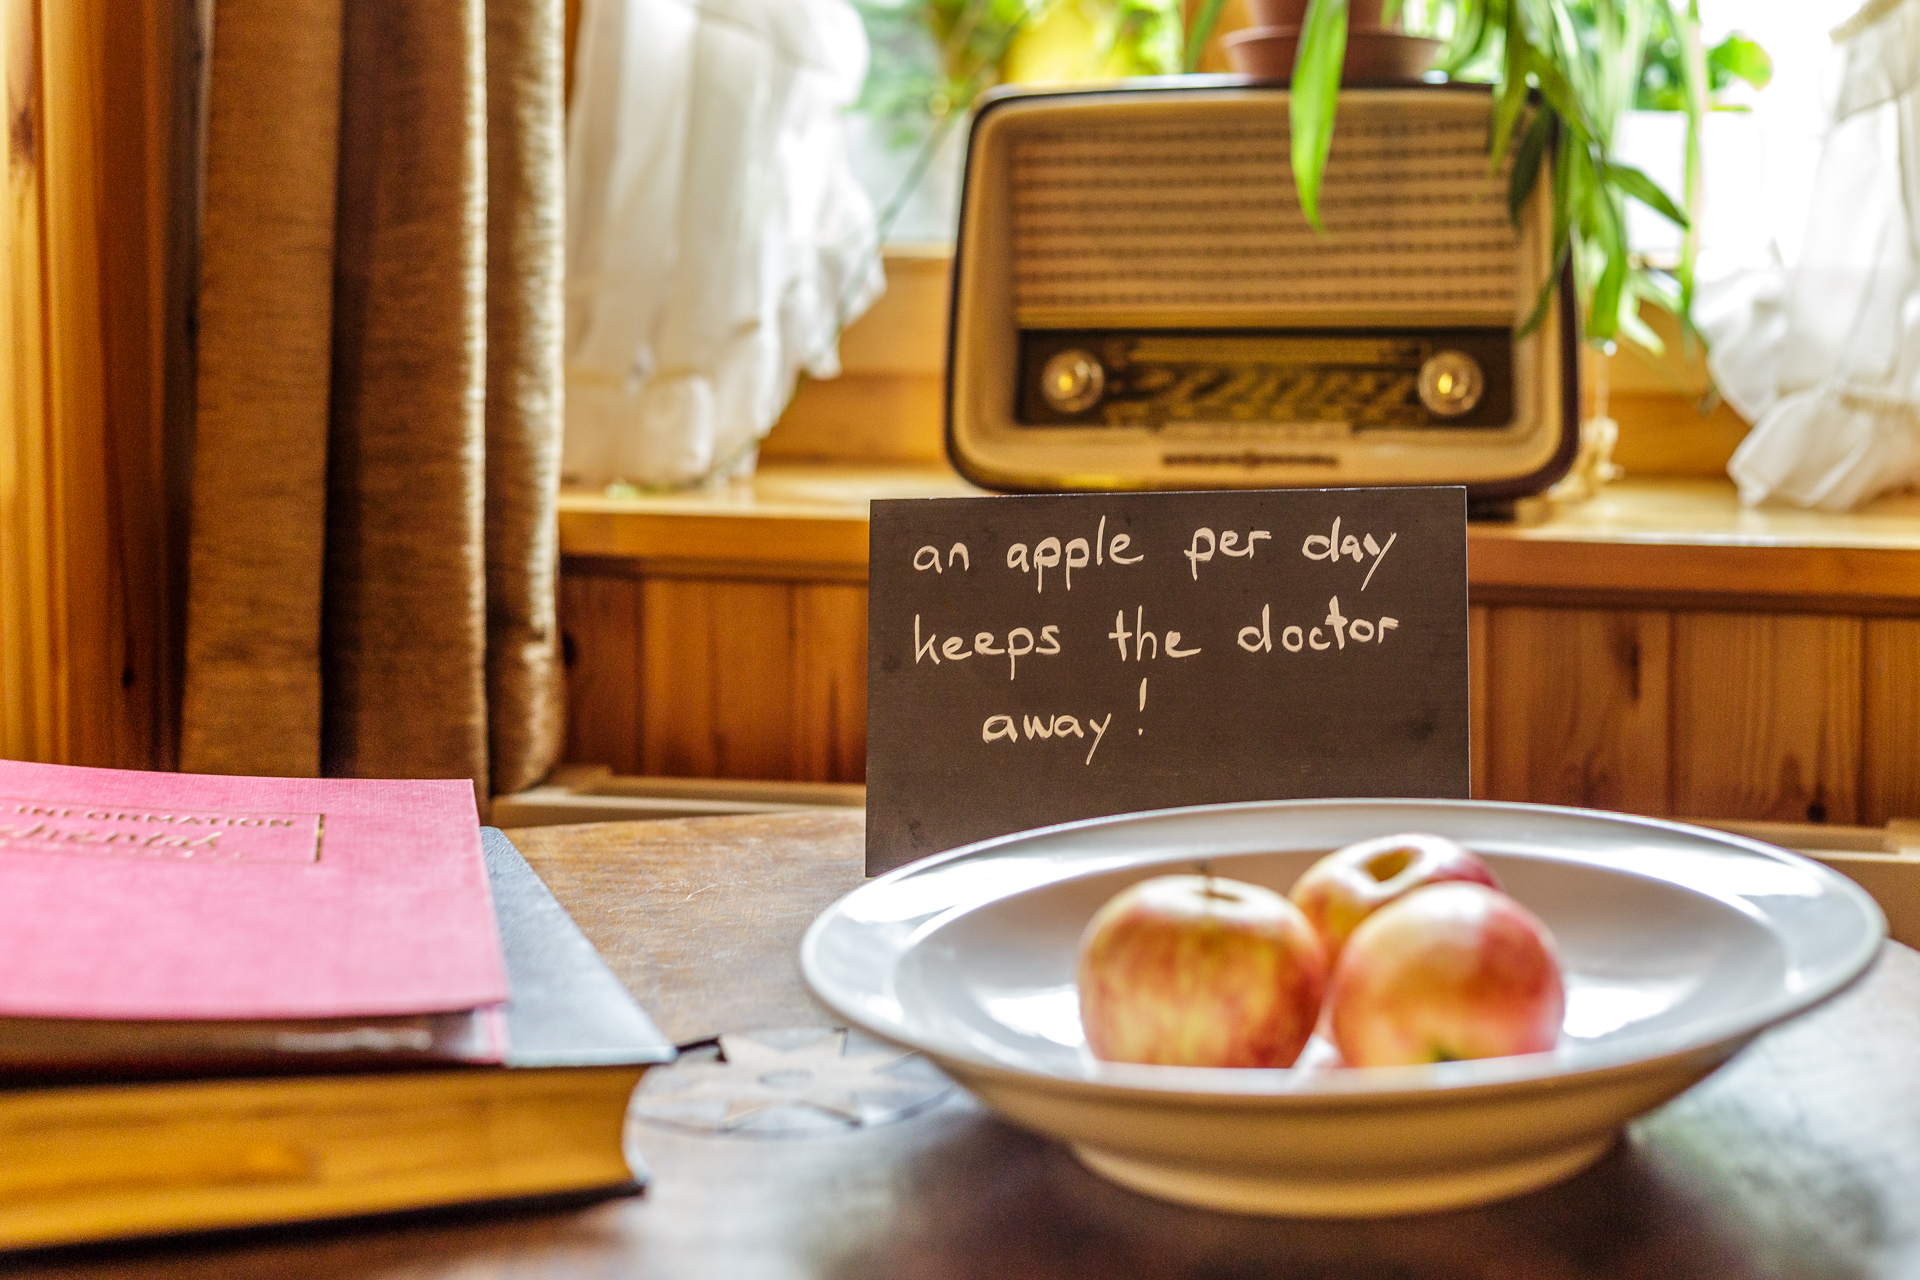 An-Apple-Per-Day-keeps-the-doctor-away